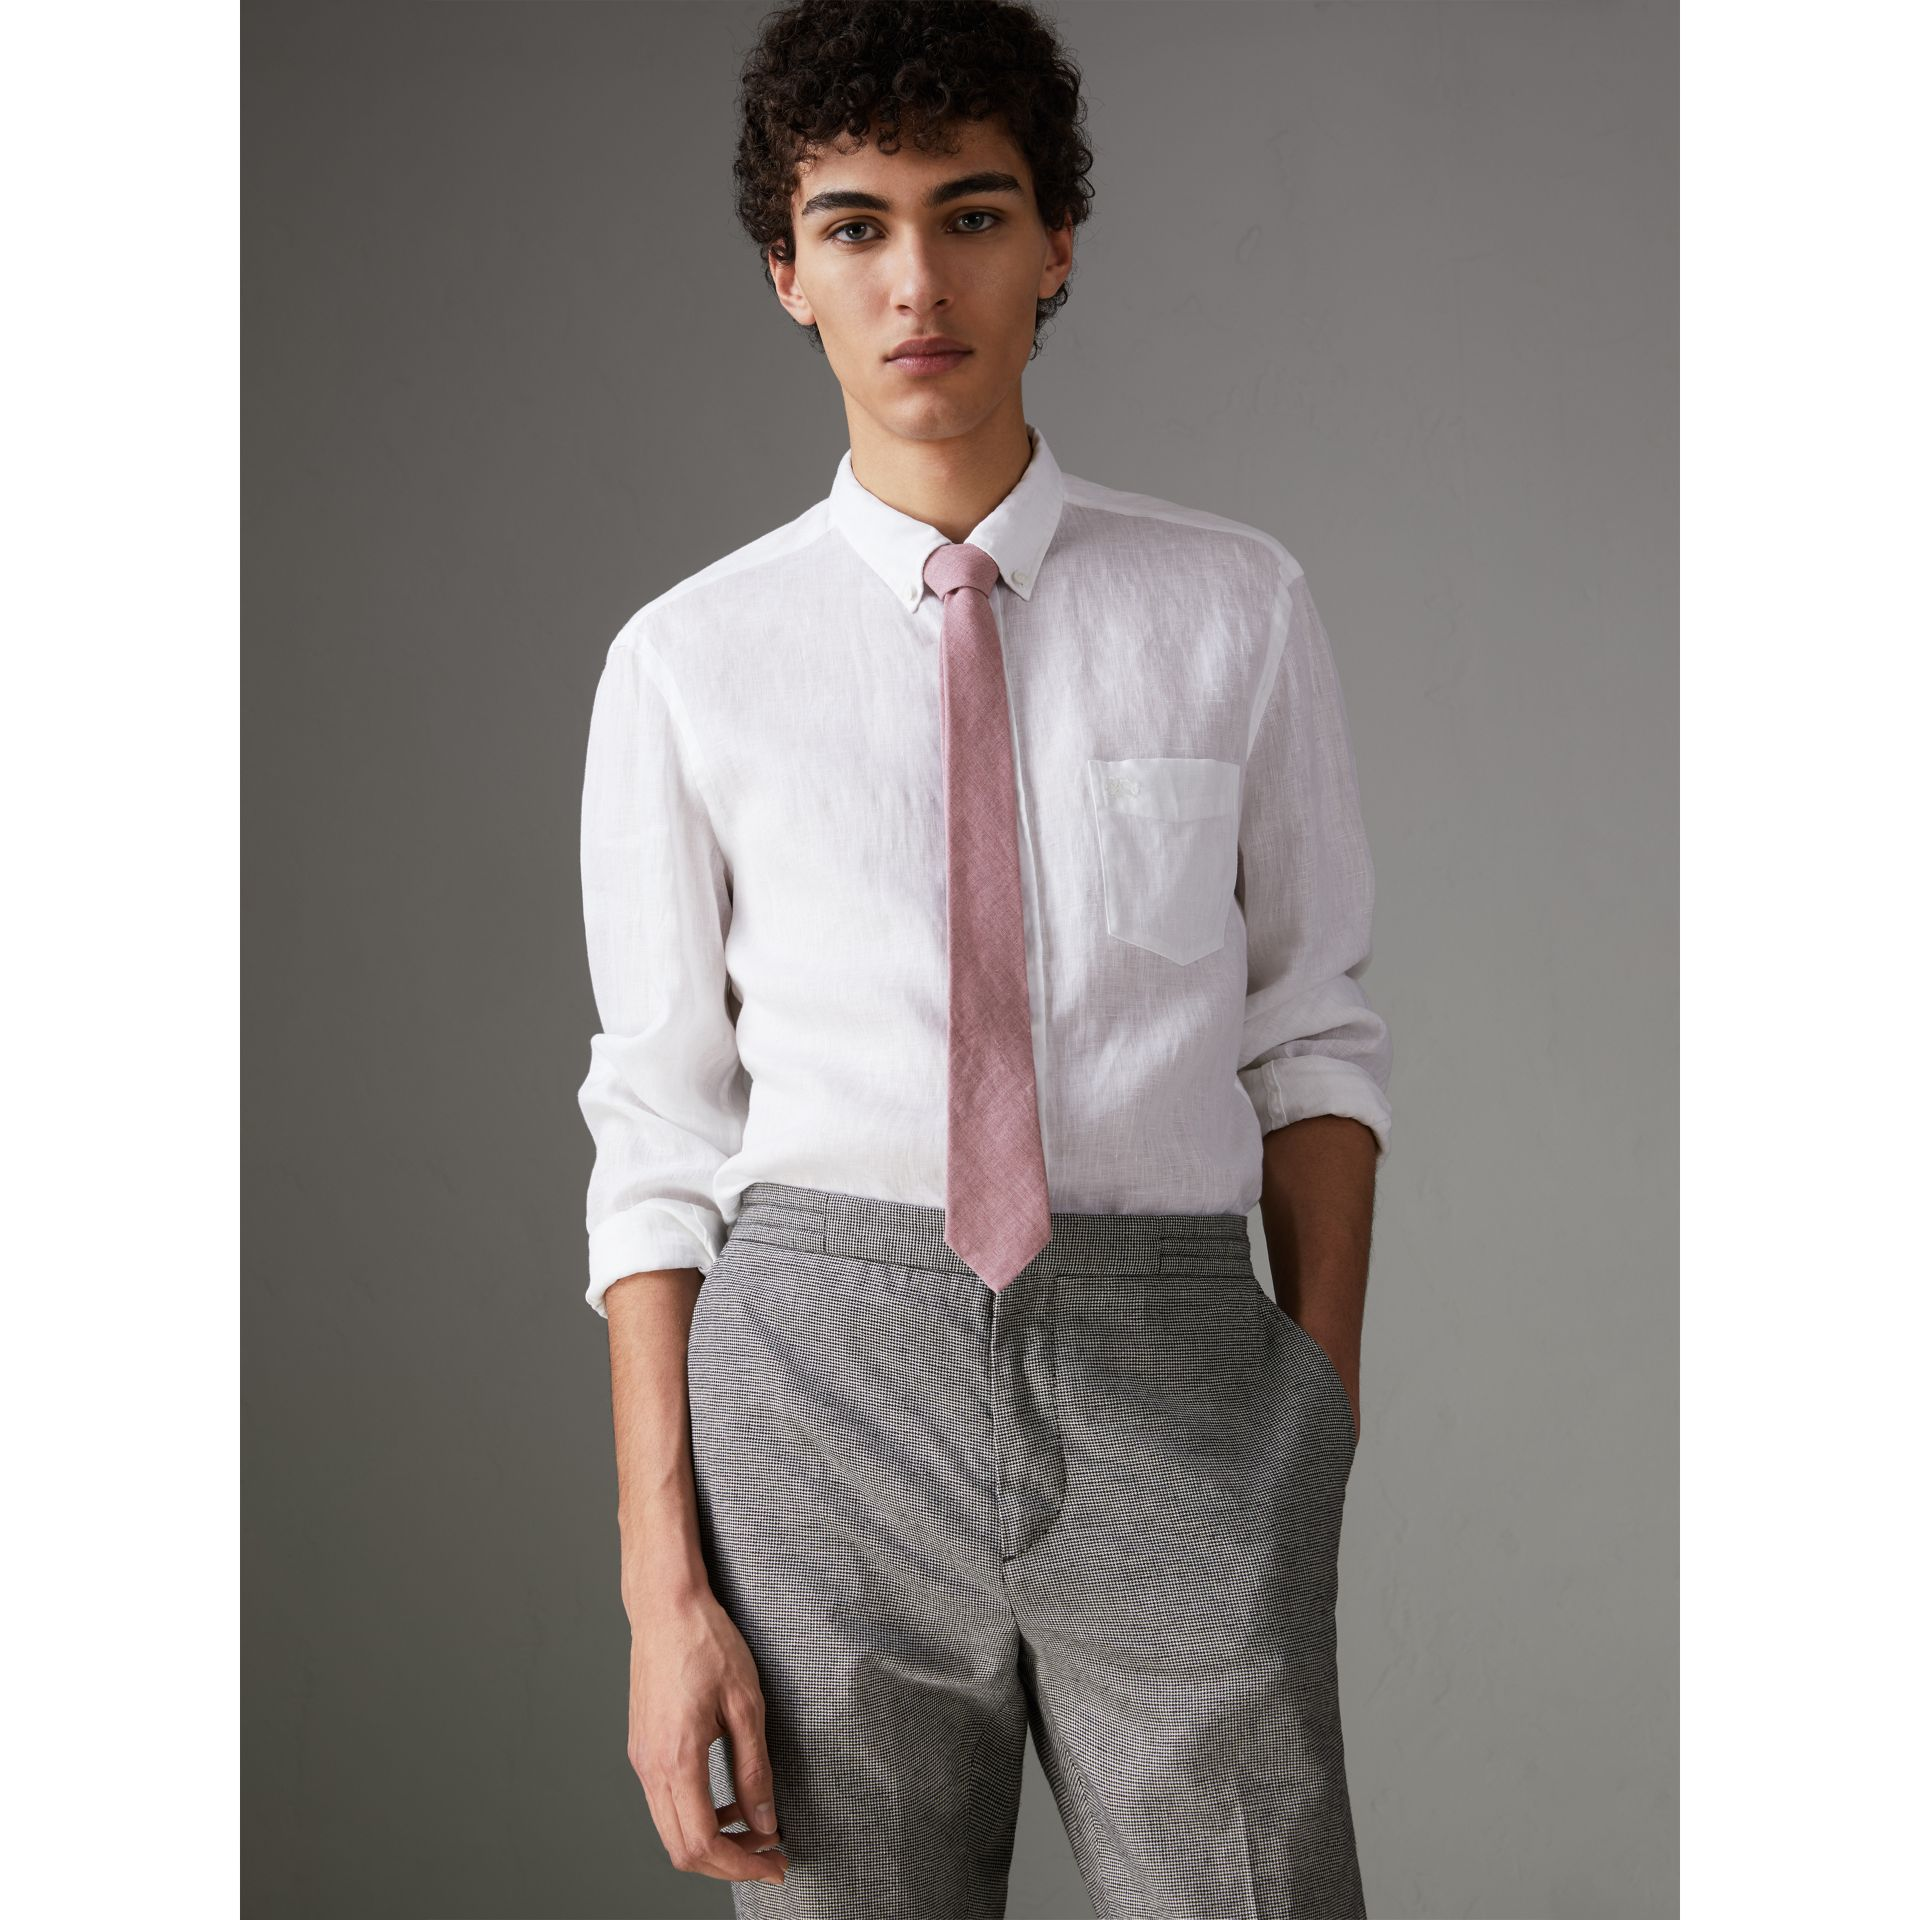 Slim Cut Linen Tie in Pink Heather - Men | Burberry United States - gallery image 3